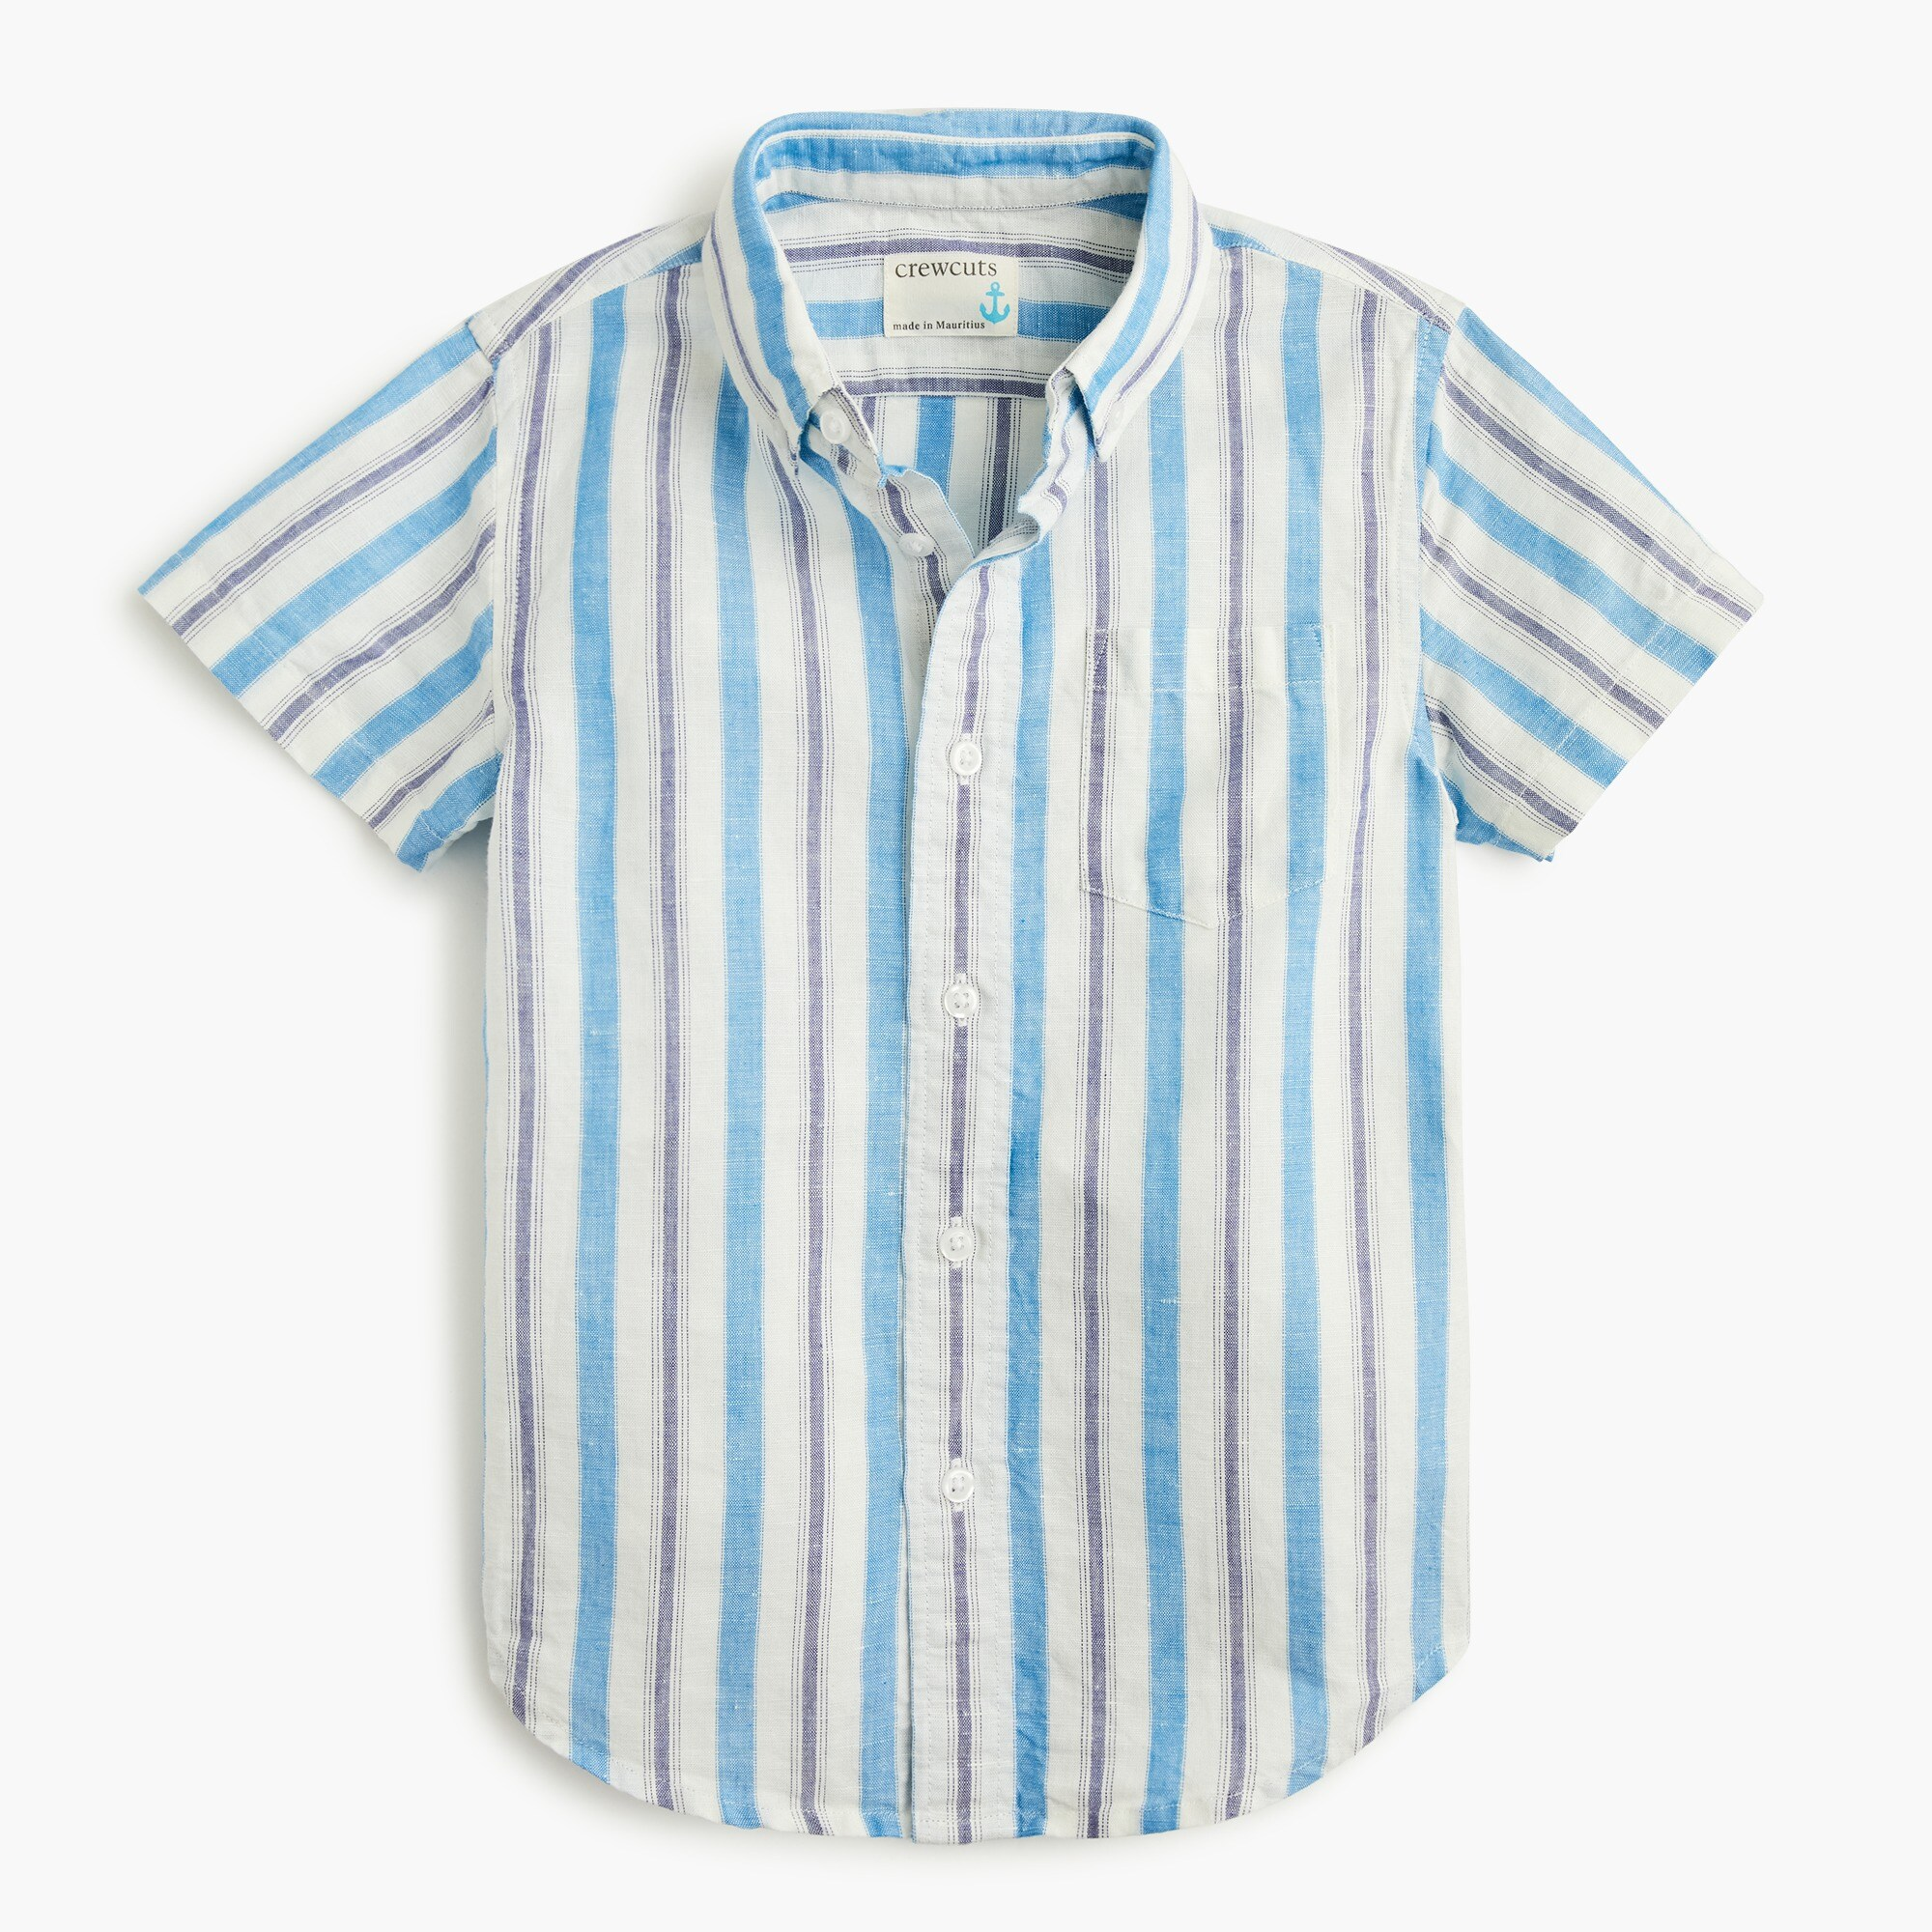 Image 2 for Boys' short-sleeve shirt in stripes